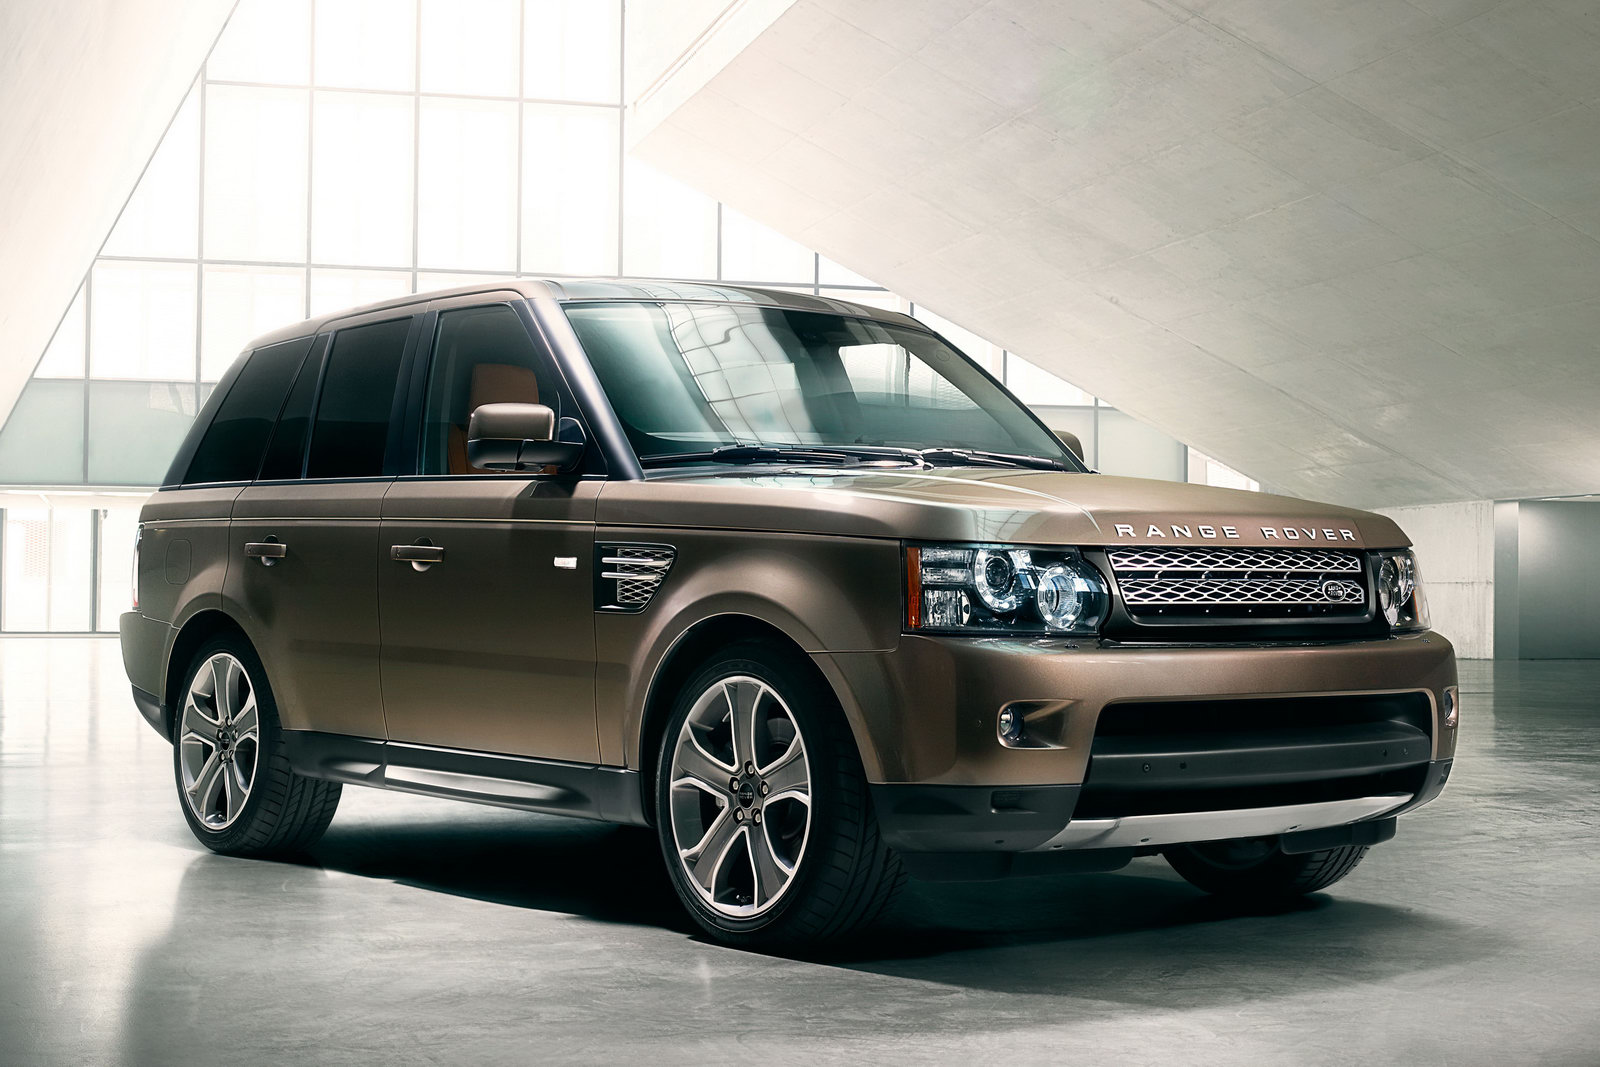 land rover discovery 4 range rover sport 2012. Black Bedroom Furniture Sets. Home Design Ideas